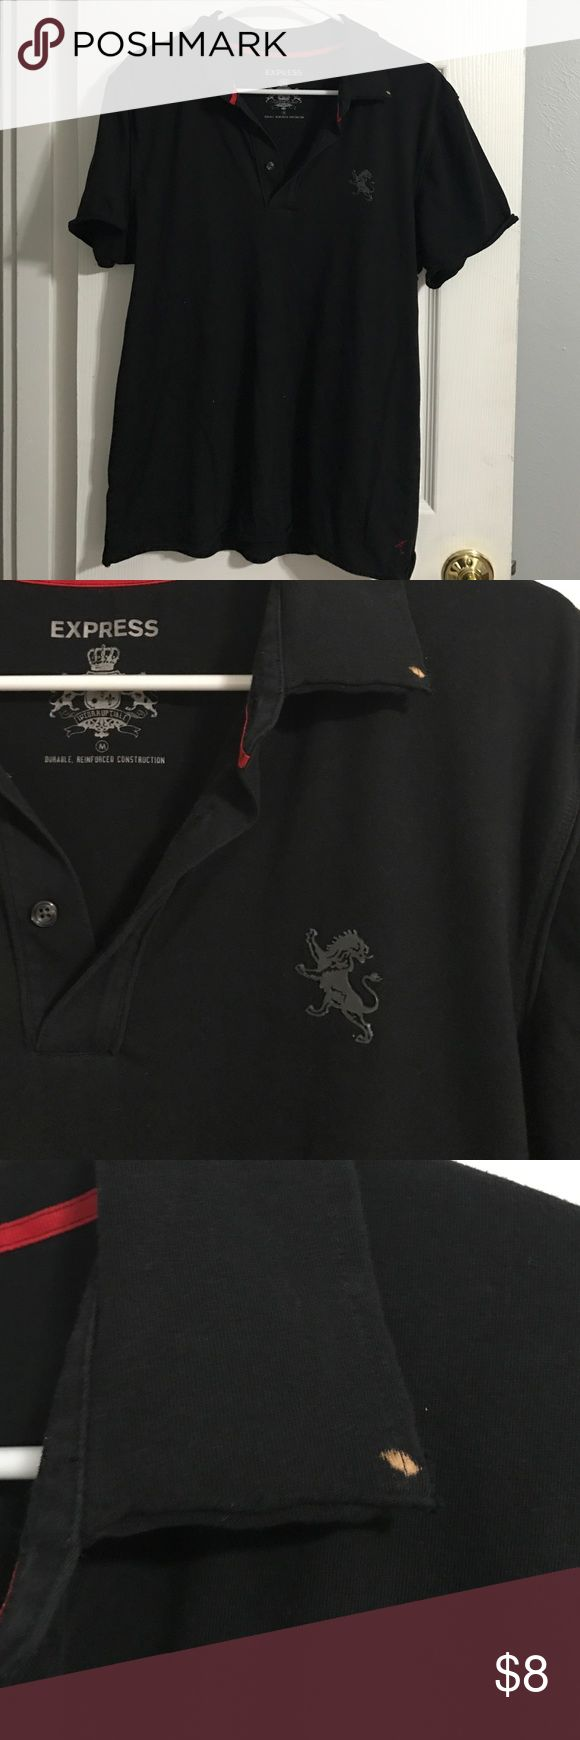 ✨ON SALE✨ Express polo shirt Has been worn. Size medium. It has a bleach stain on the collar. Bundle to save. Express Shirts Polos